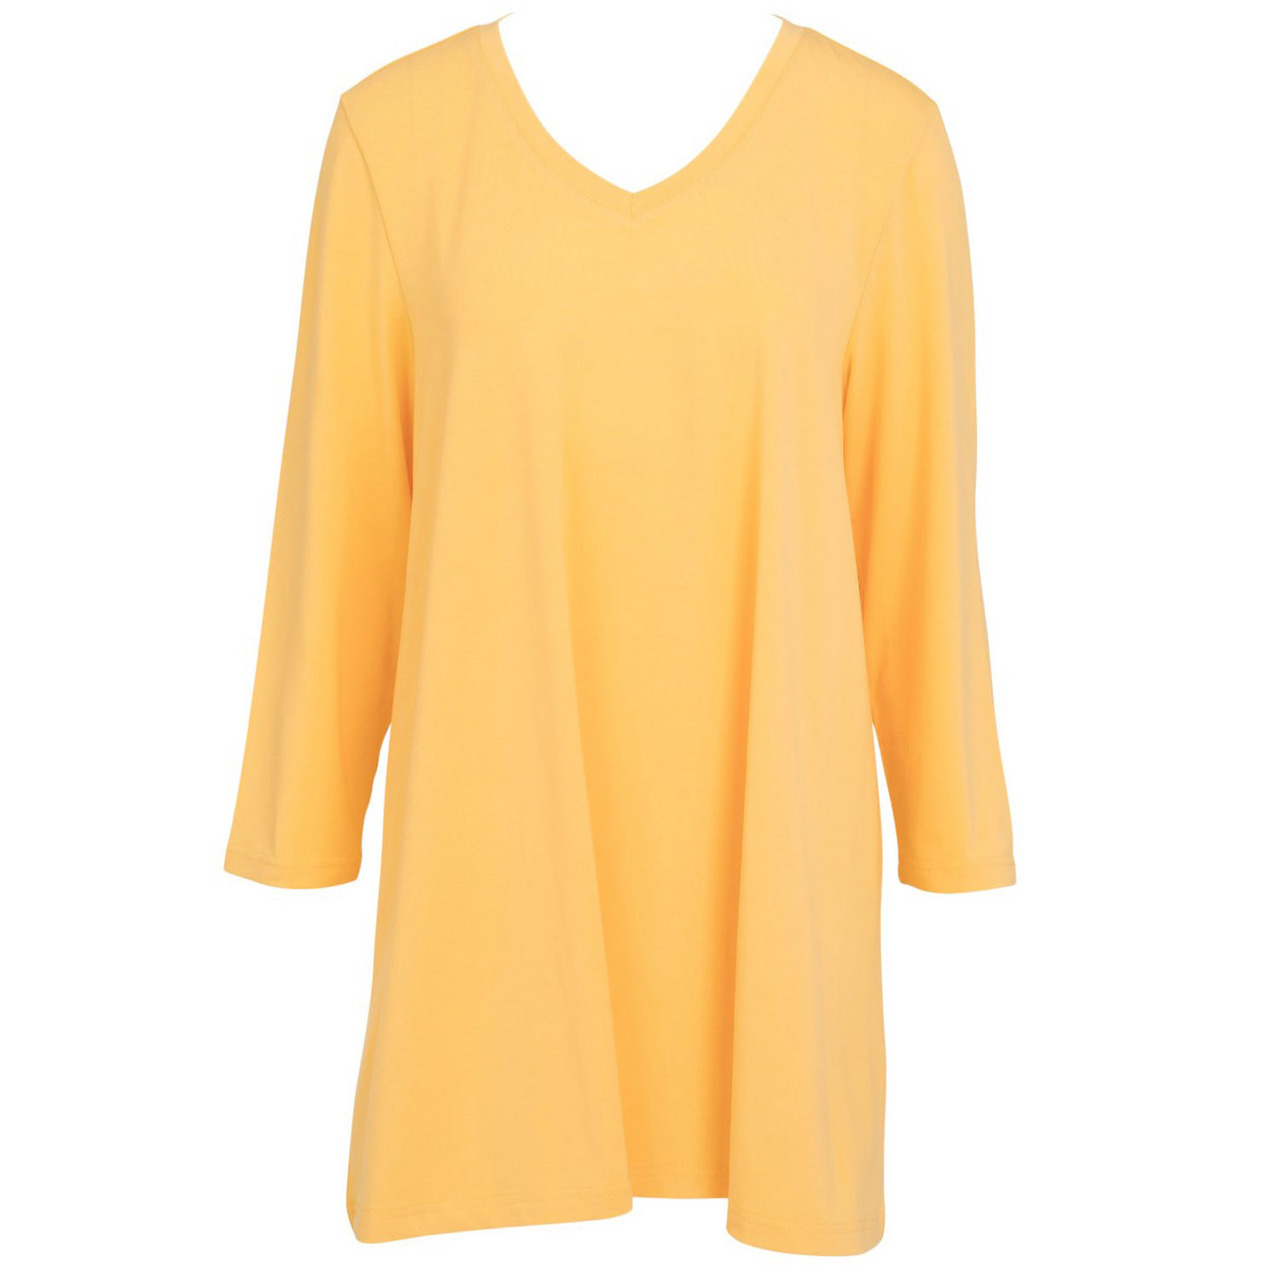 Essential V-Neck Tunic - Mimosa LG/XL